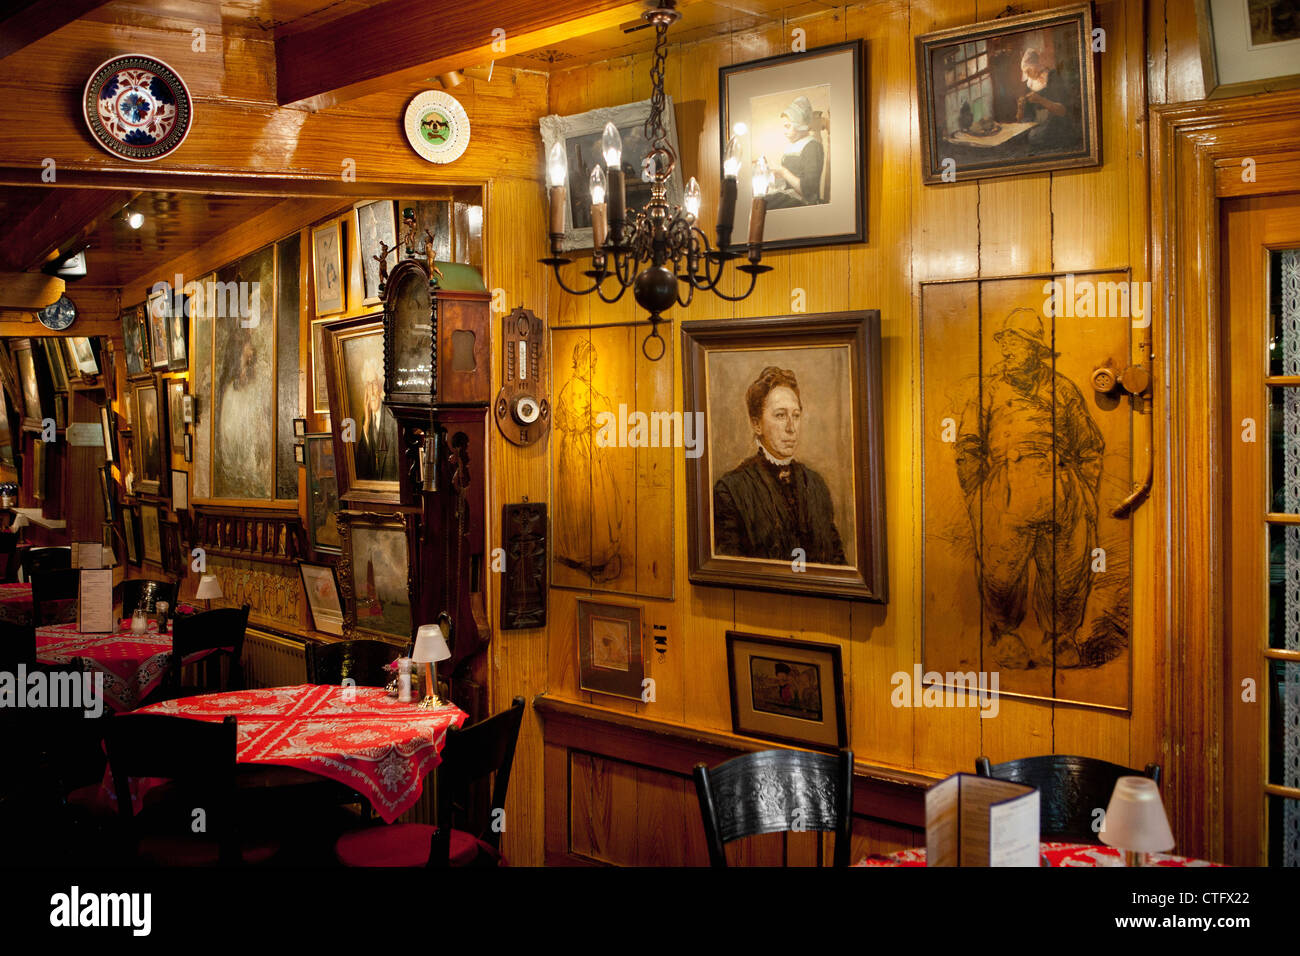 Famous hotel Spaander. Many times artists paid their bill with art work, like paintings. The hotel receives many Stock Photo